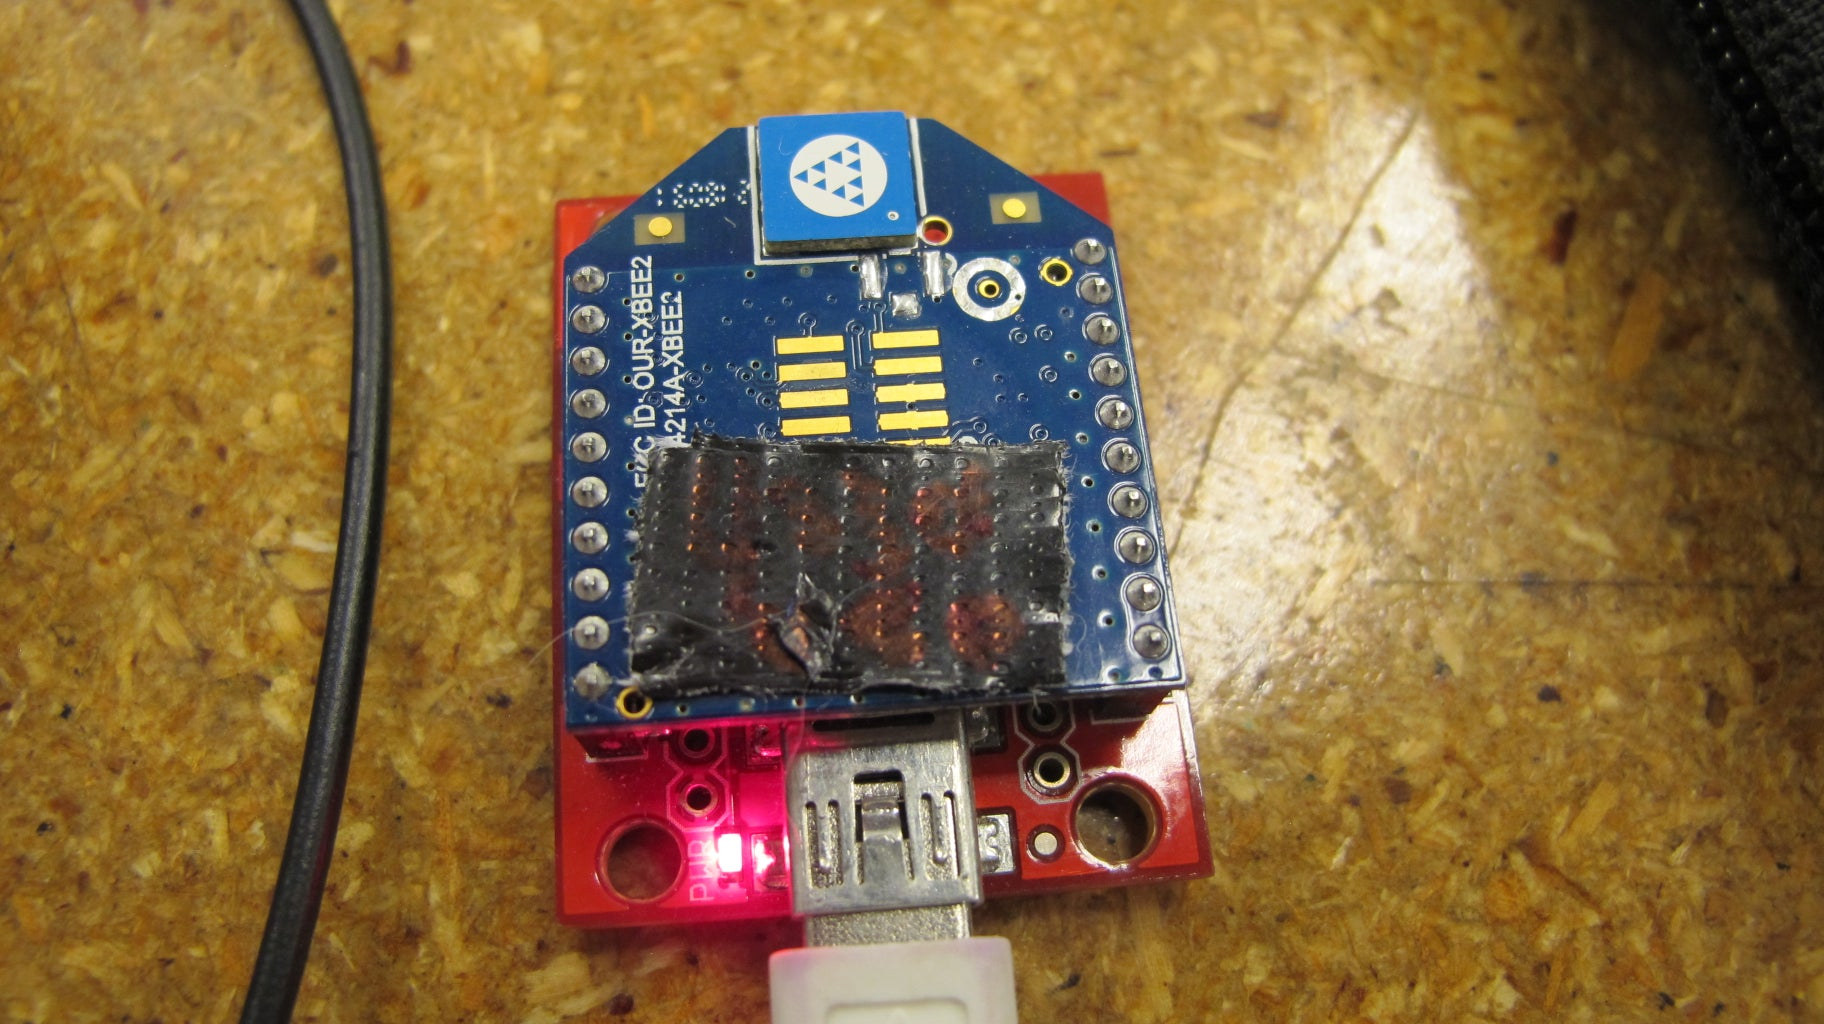 Make a Remote Control Transmitter, or Just Use Xbee & Computer